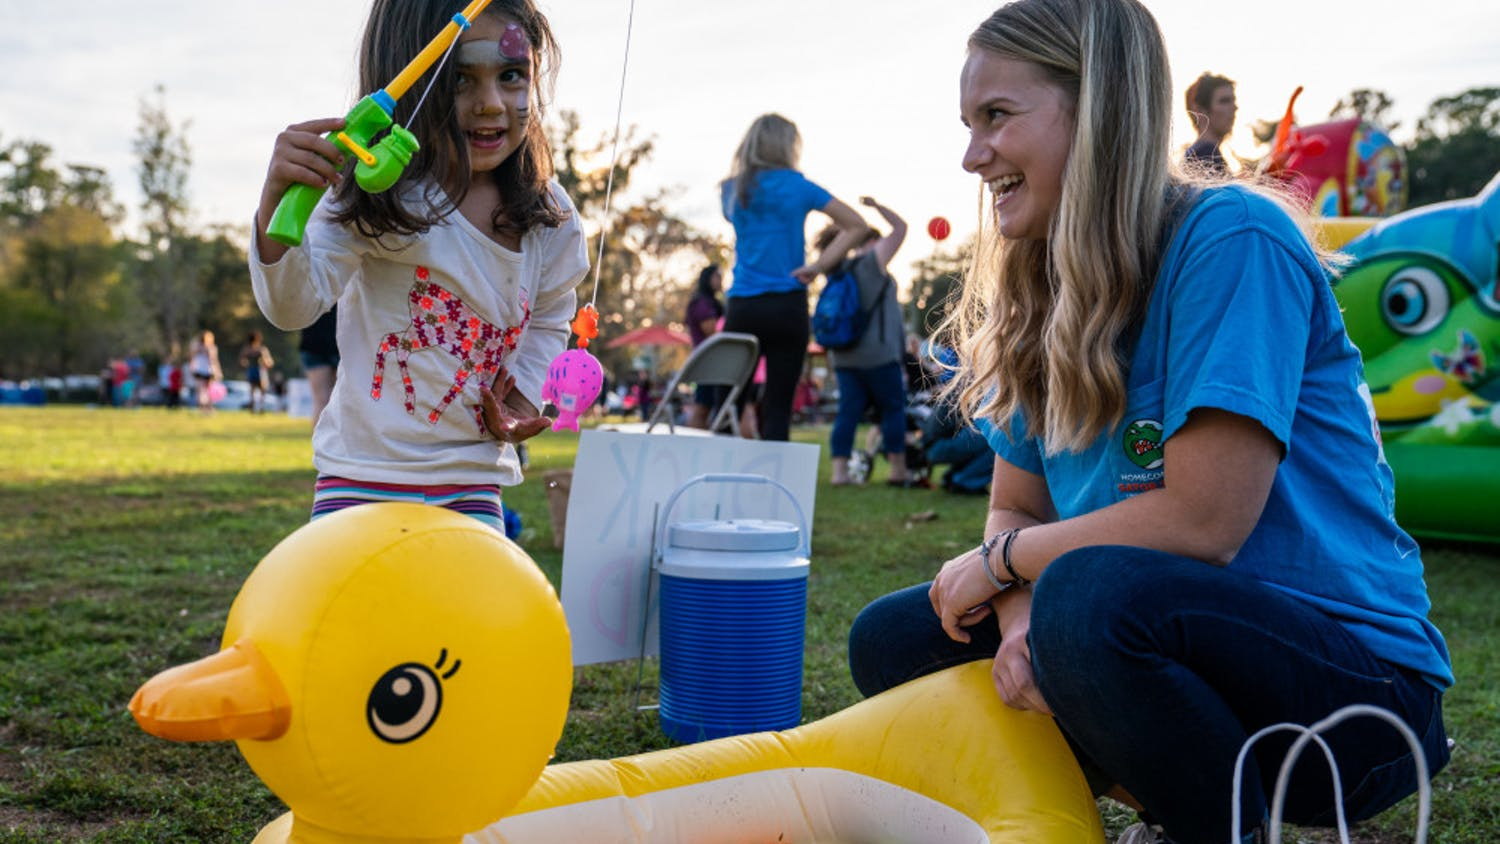 """Volunteer Drew McCullough, 18, laughs as she watches a child fish for prizes during Sunday's """"Hey, Neighbor!"""" carnival held at Magnolia Parke Square. McCullough, a UF sociology freshman, was recently diagnosed with Type 1 diabetes and received support from the UF Diabetes Institute's support group. The institute, along with UF's College Diabetes Network chapter, hosted the event to celebrate National Diabetes Awareness Month."""